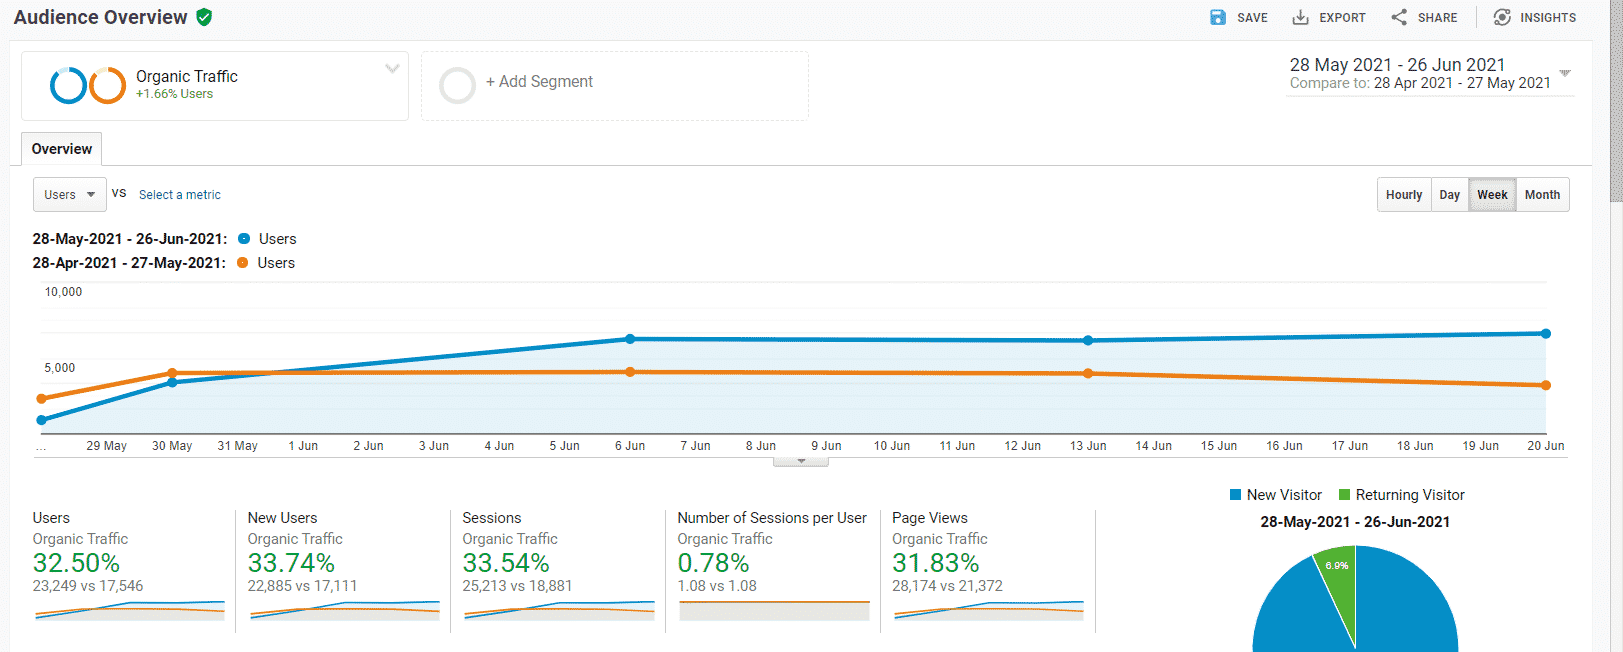 30 percent increase in organic traffic over 30 days